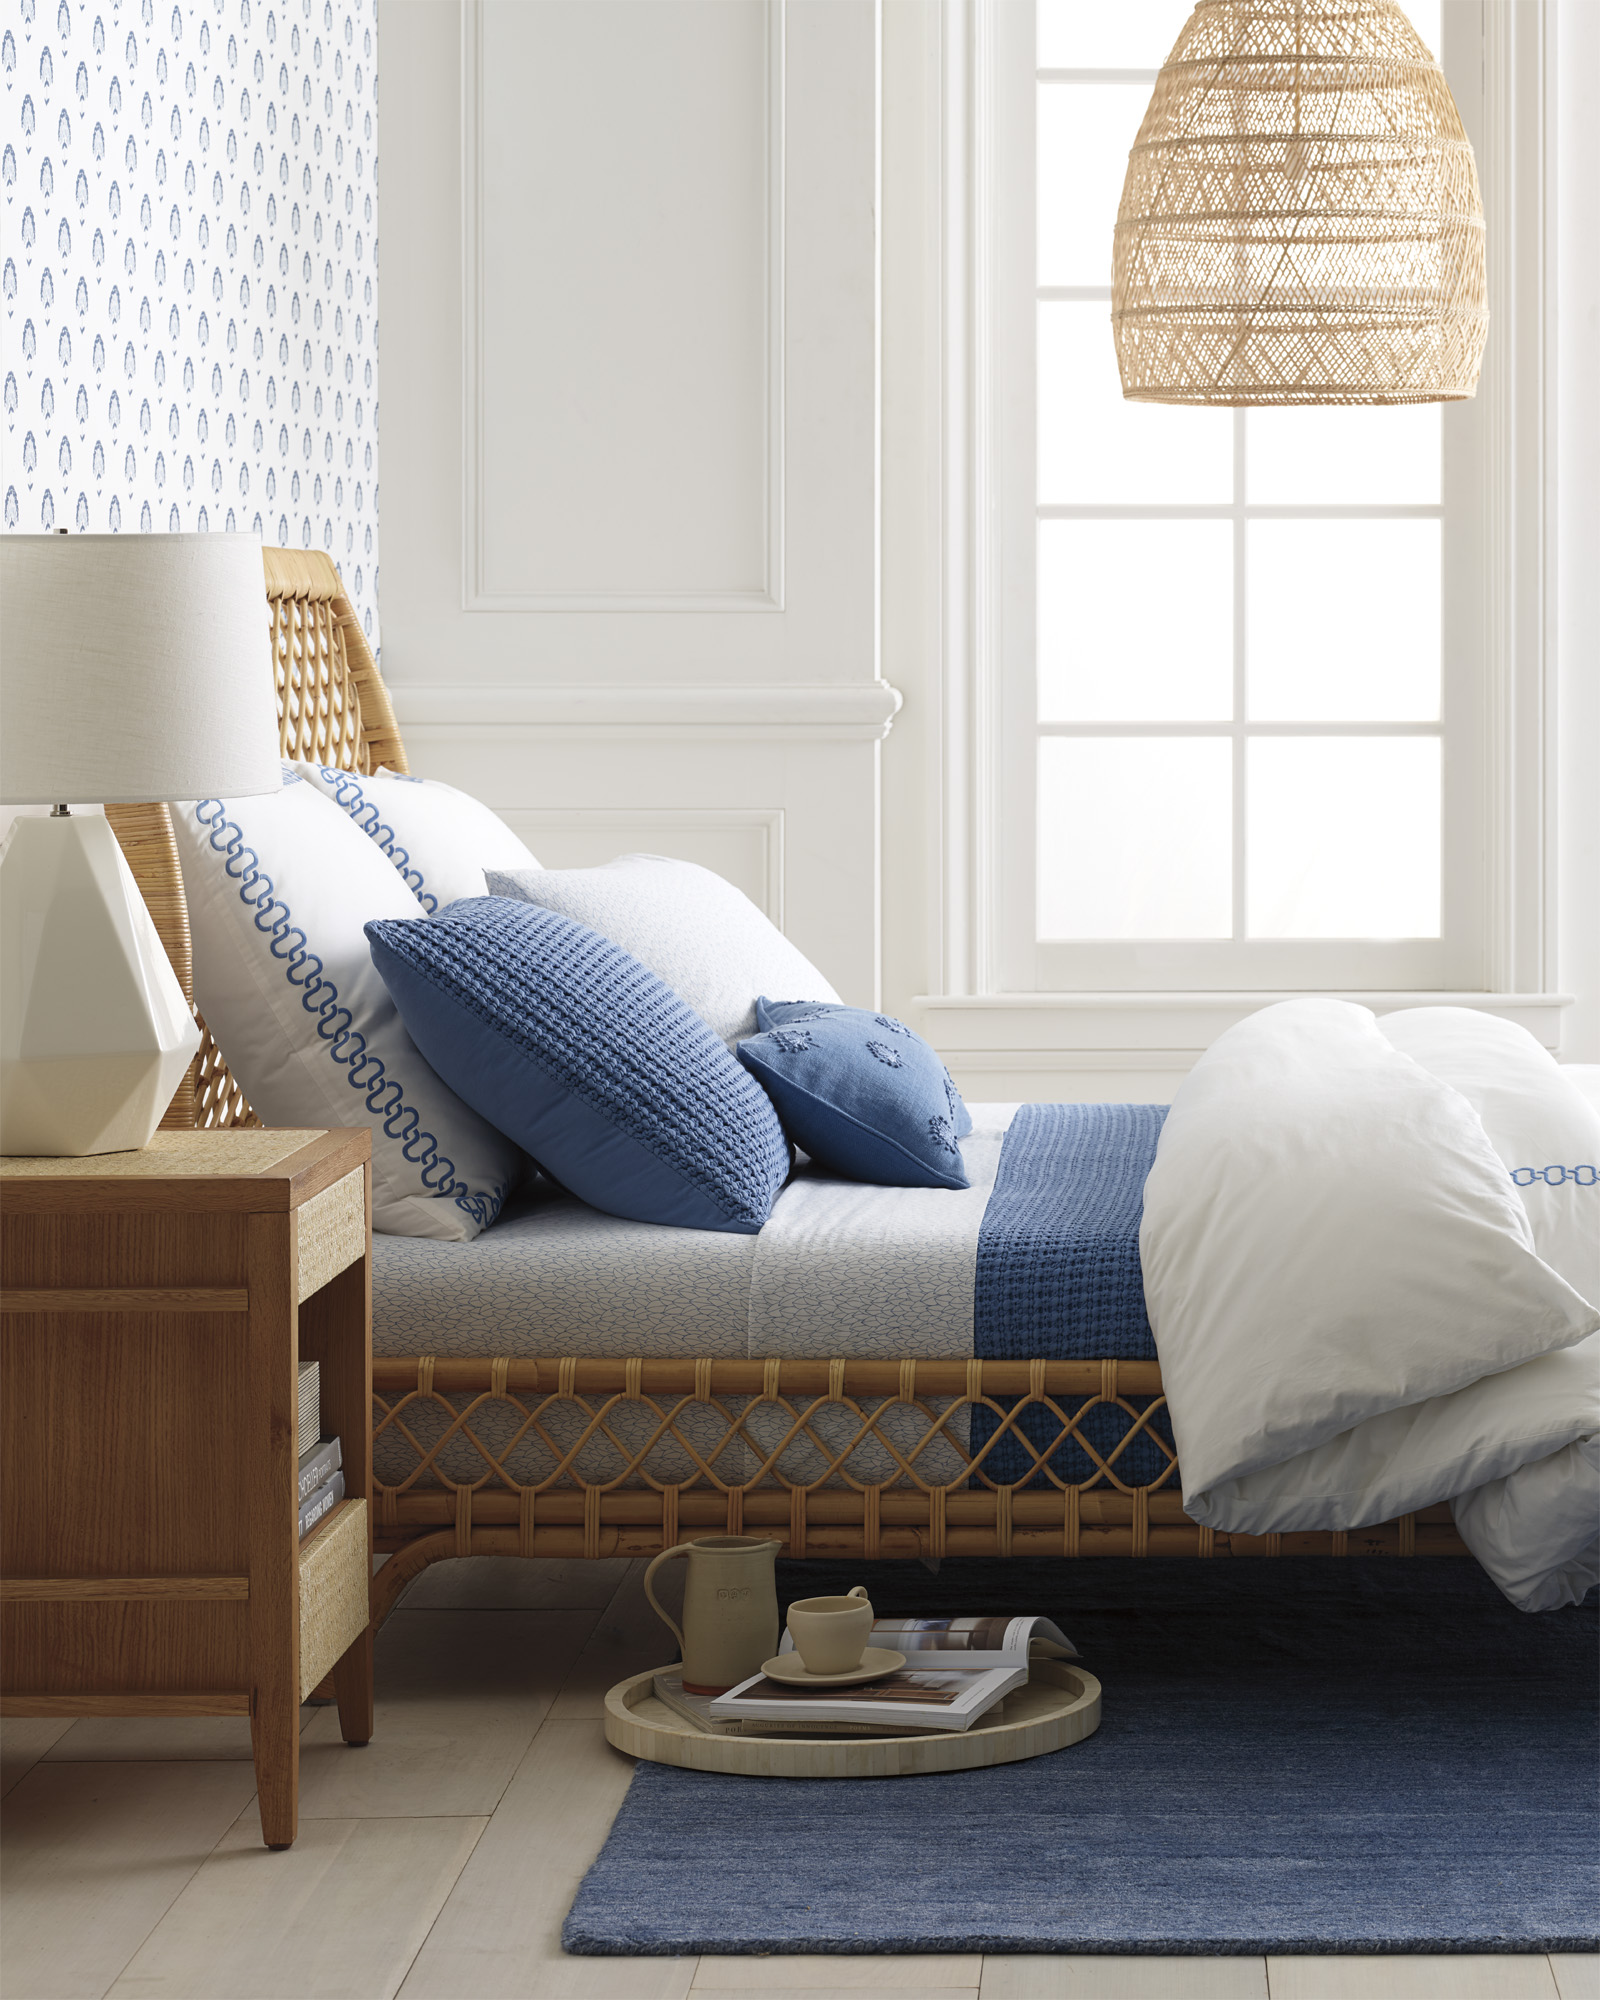 serena-lily-rattan-bed-blue-white-bedroom-wicker-woven-pendant-light